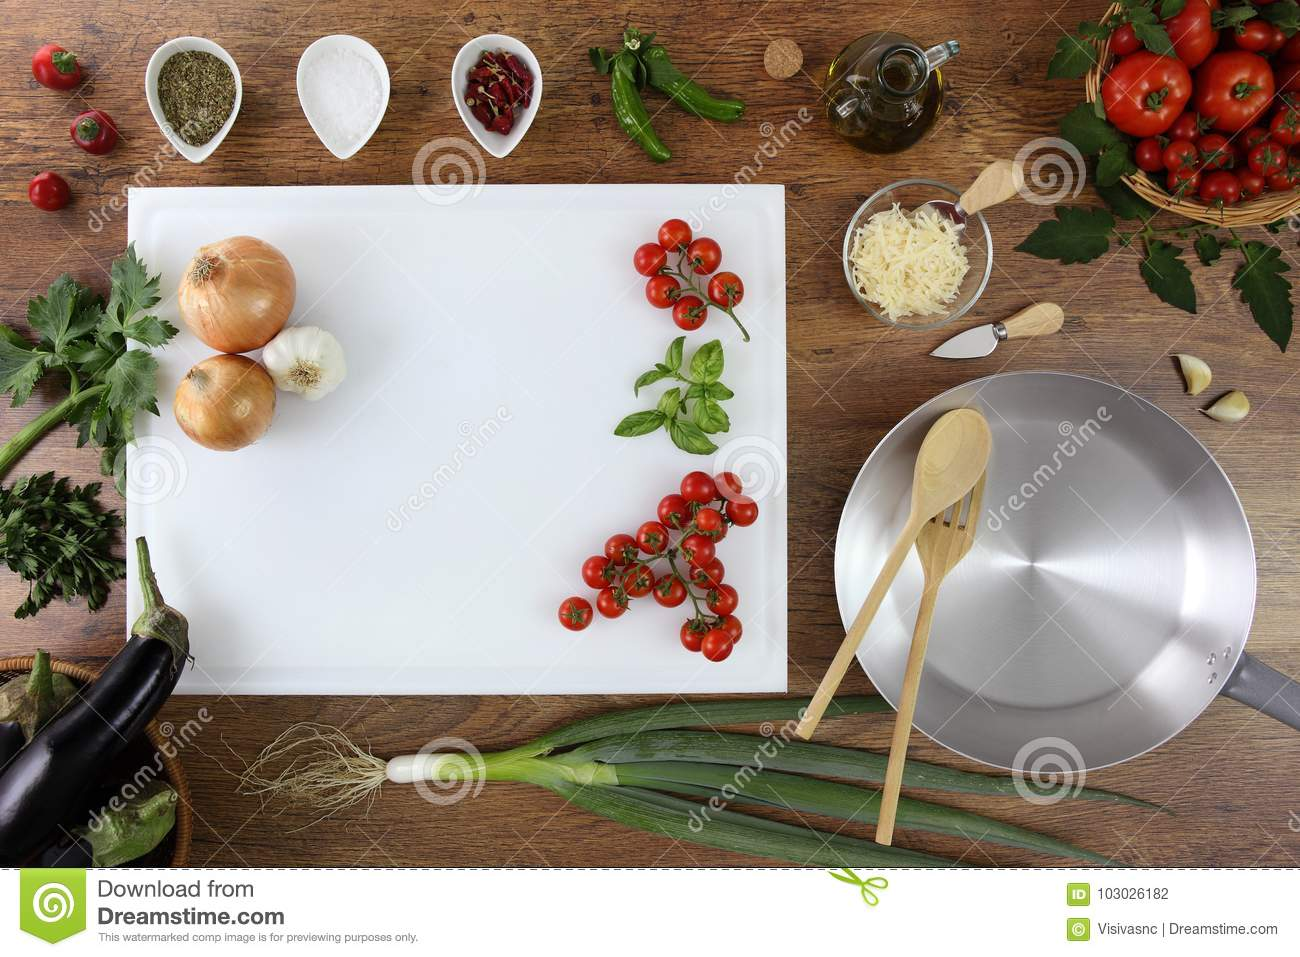 Food top view, kitchen wooden top work with white cutting board